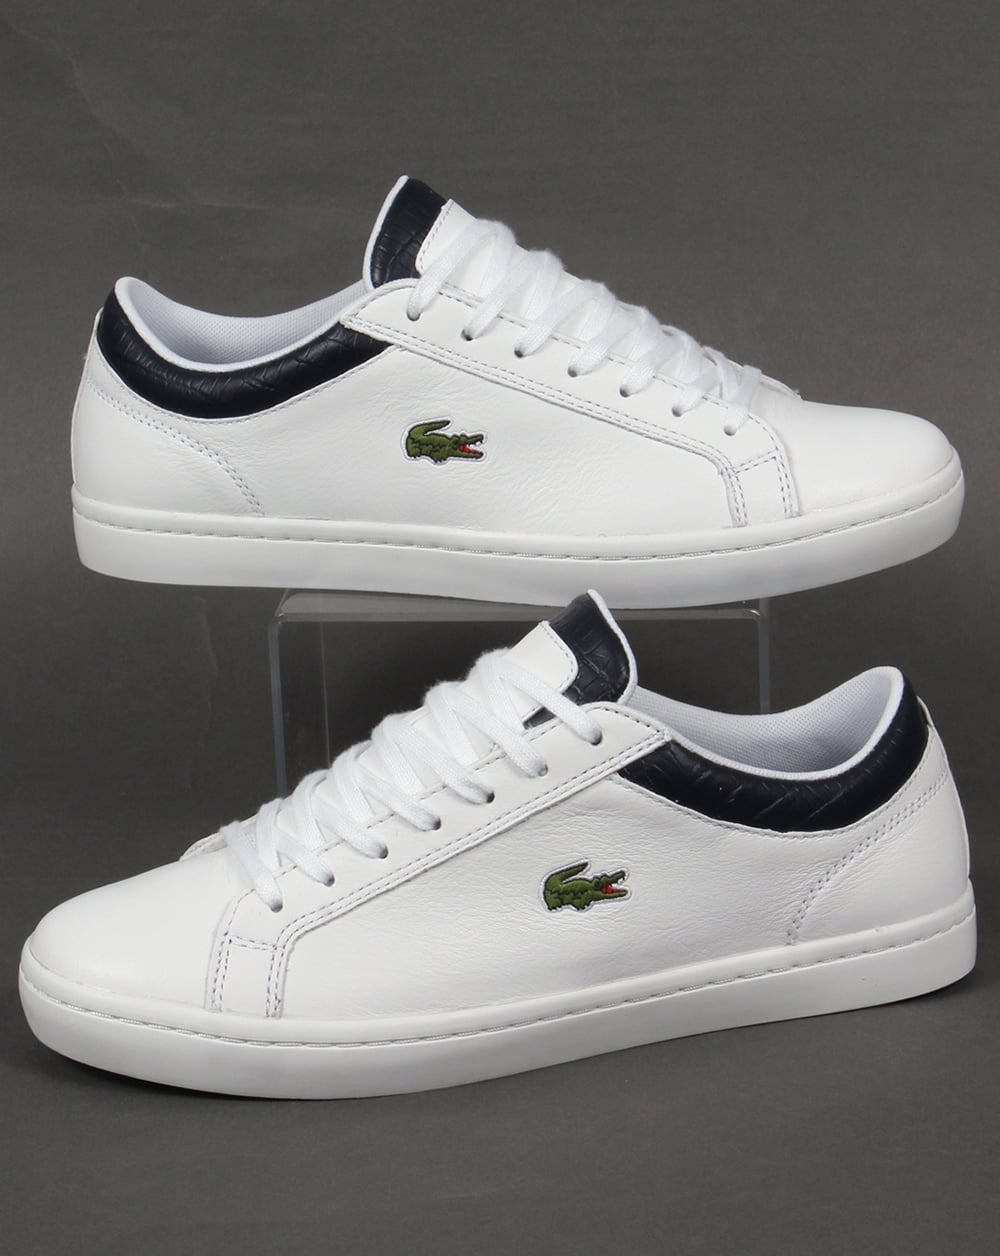 Image Result For Mens Casual Footwear